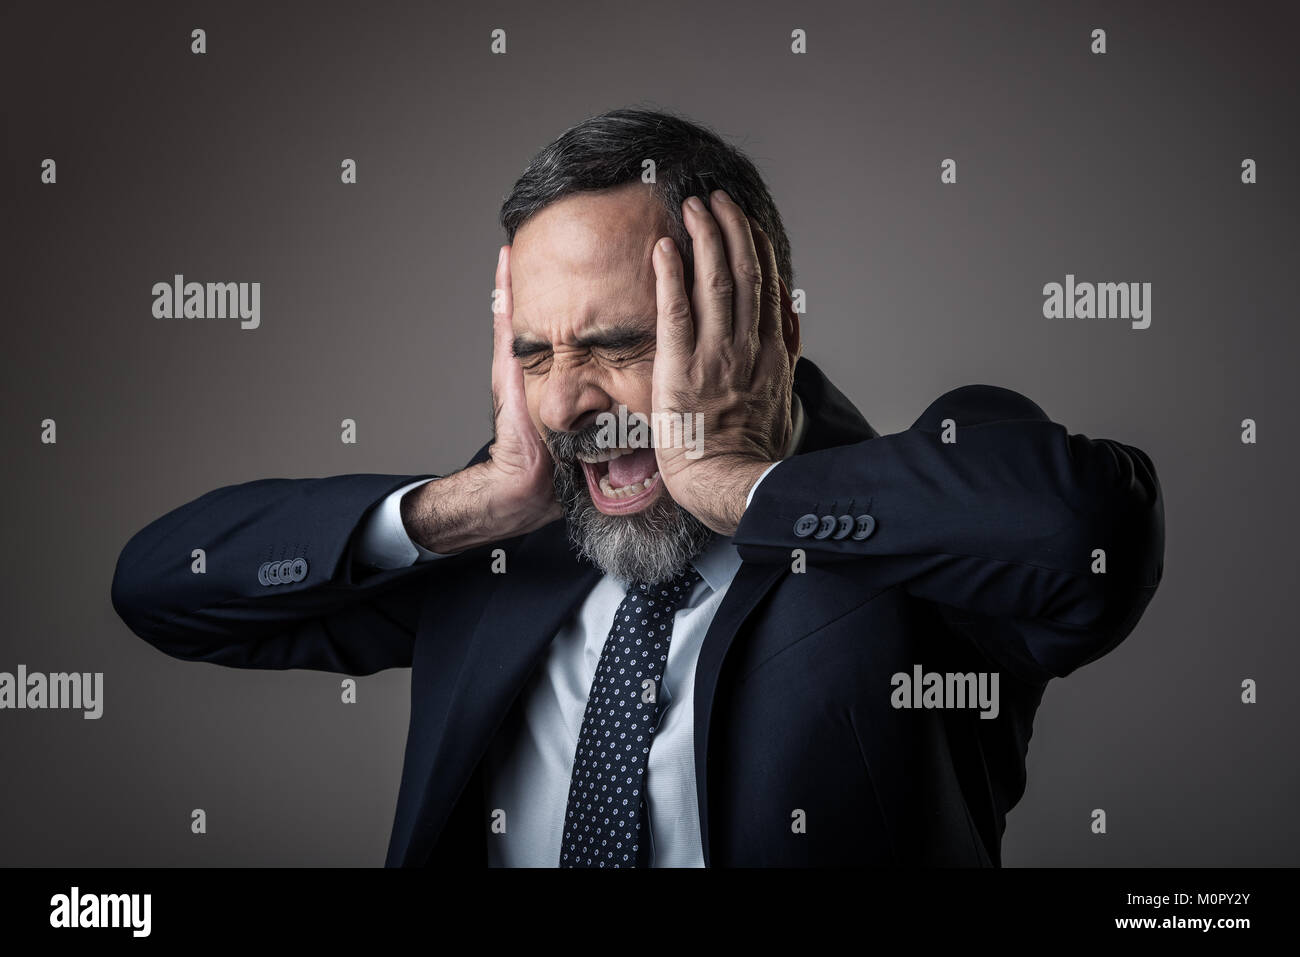 Angry business man with a terrible headache - Stock Image